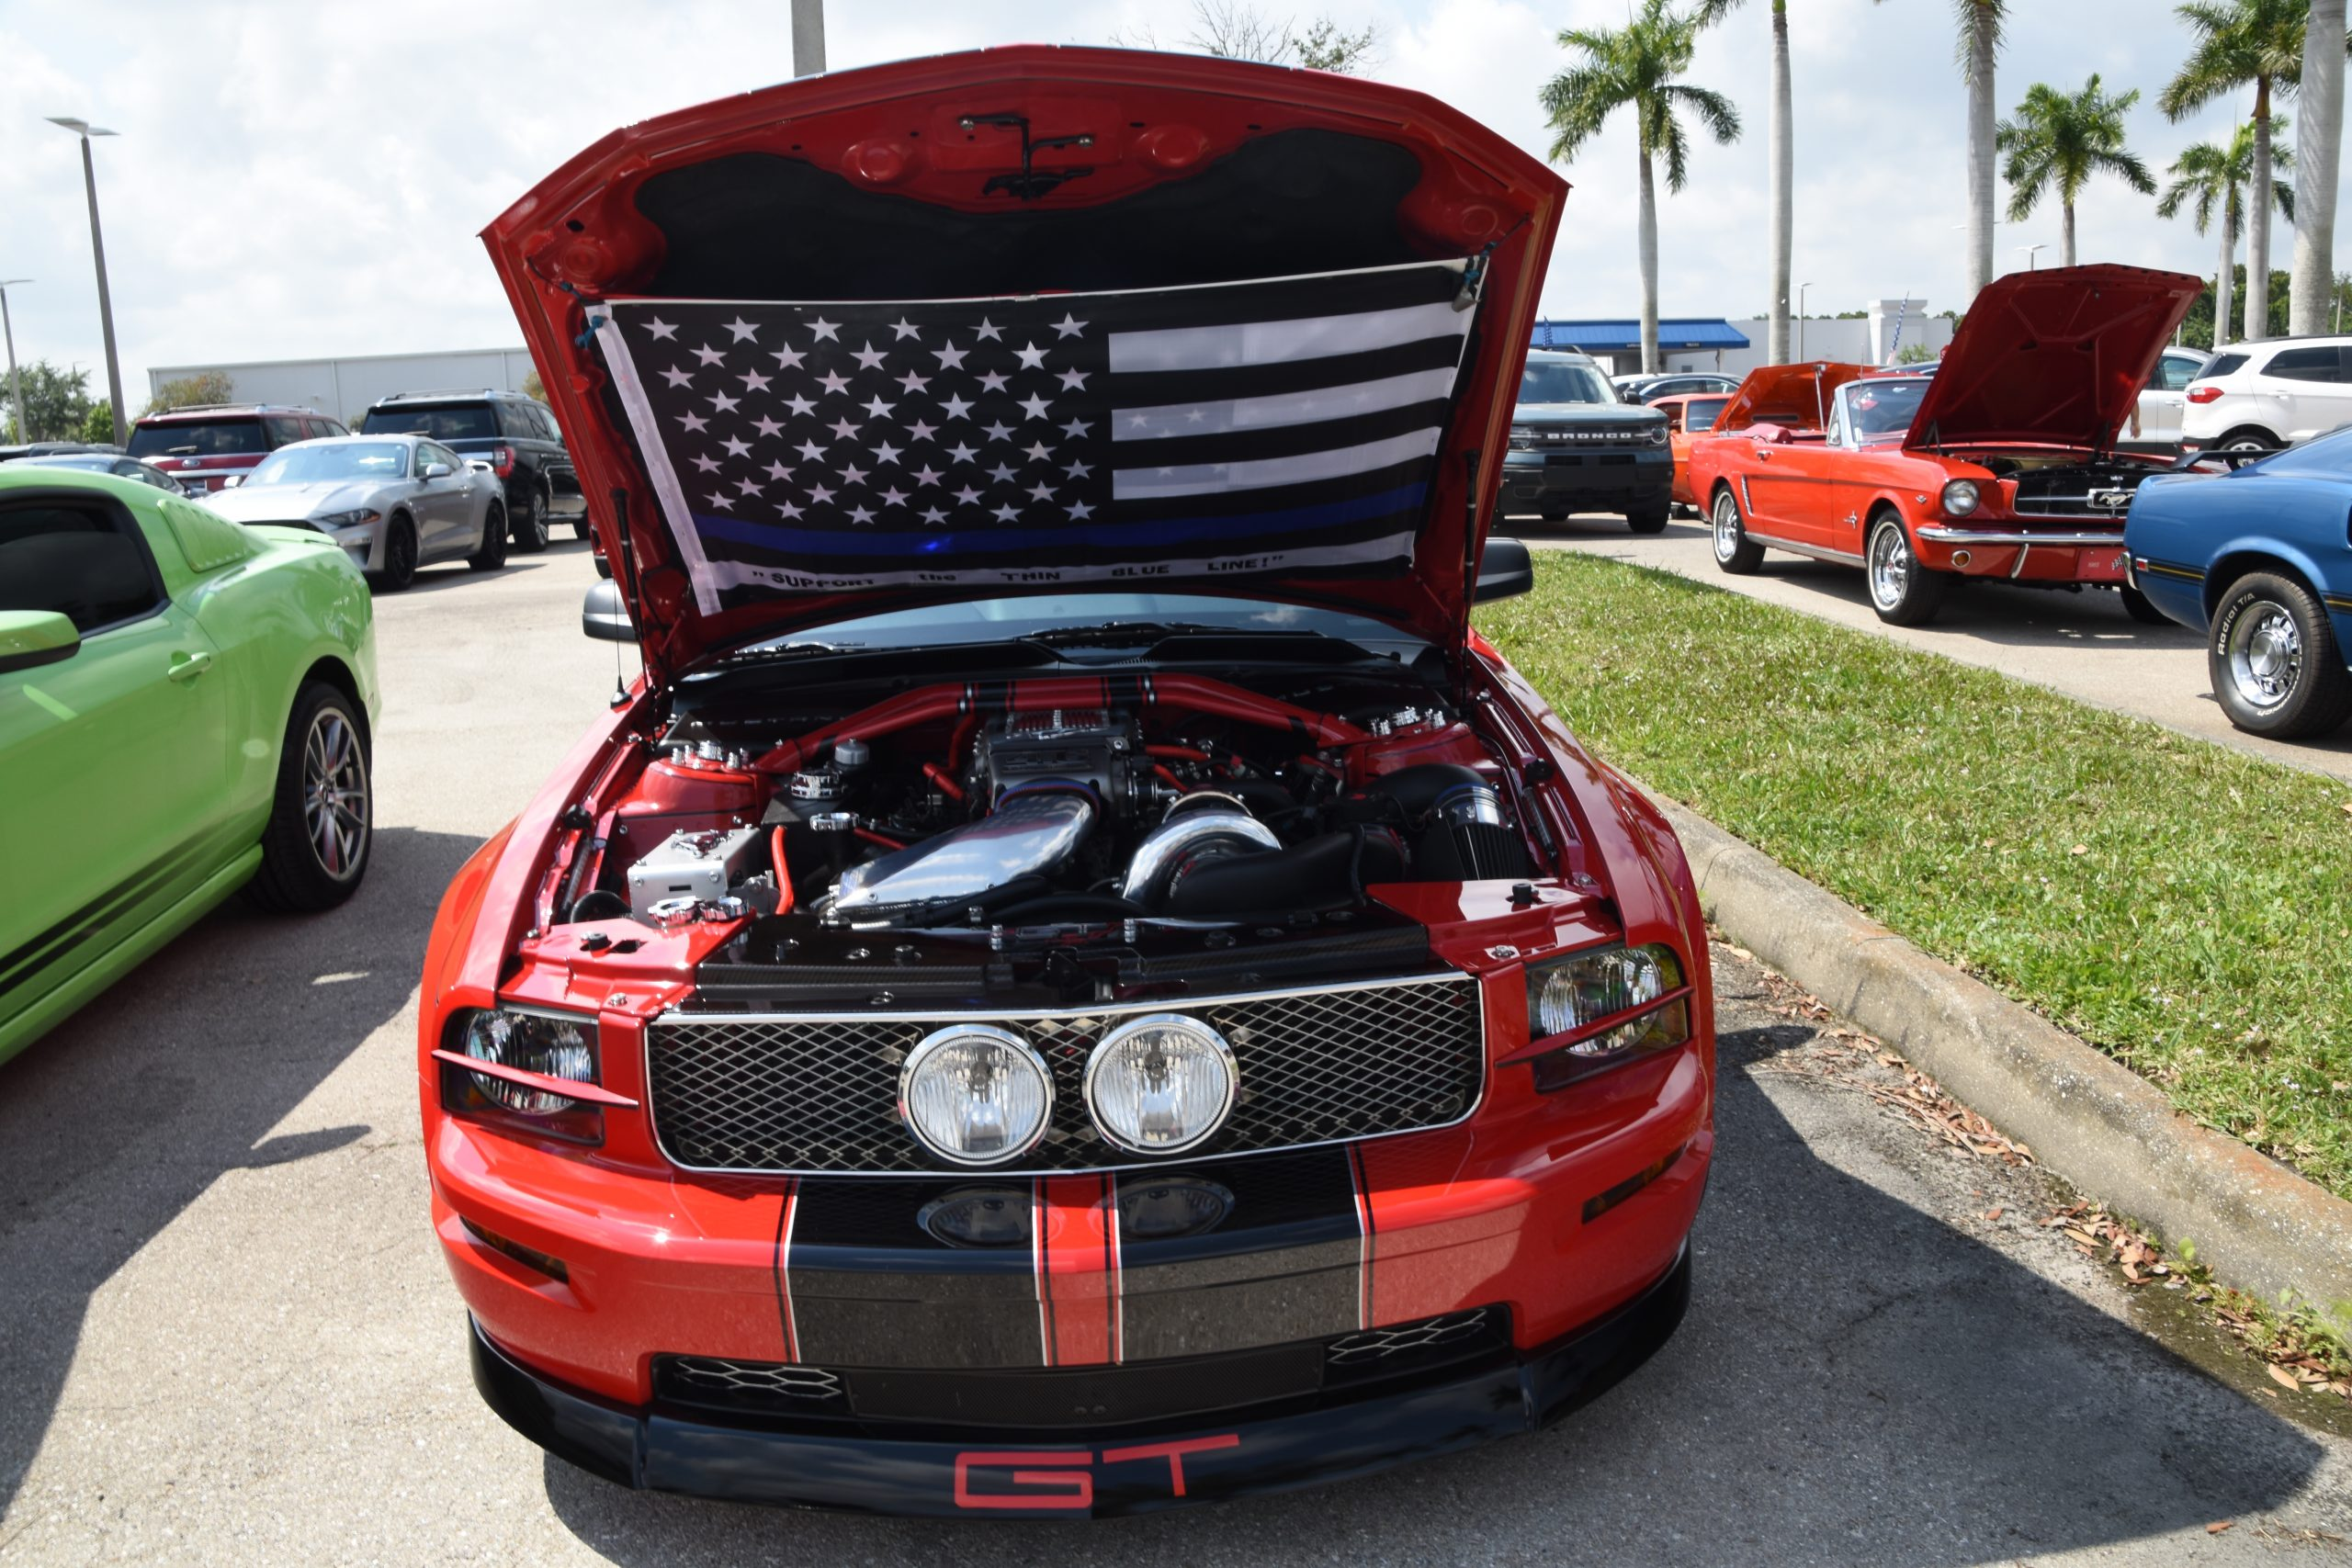 Red Mustang GT with hood up